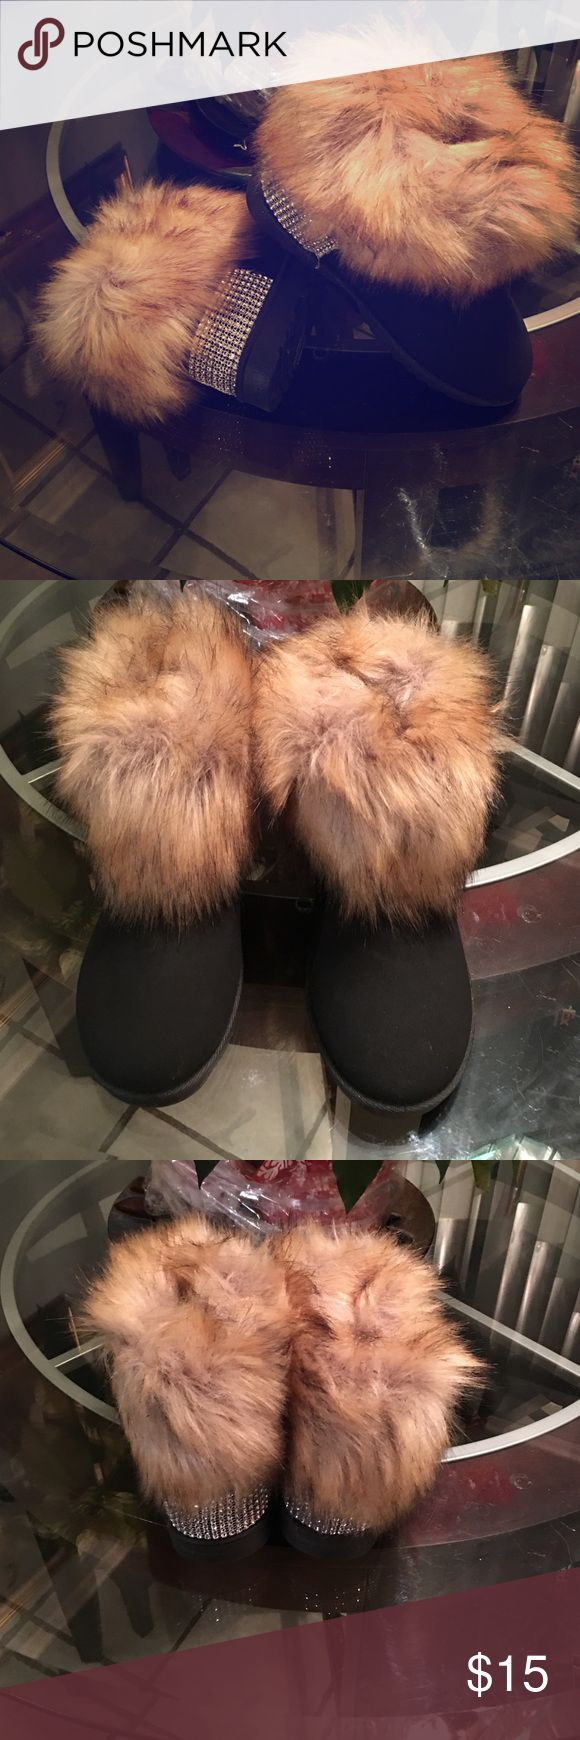 Fur Ankle Booties Black and fur..rhinestone heel. Never worn. YJL Sport Shoes Ankle Boots & Booties